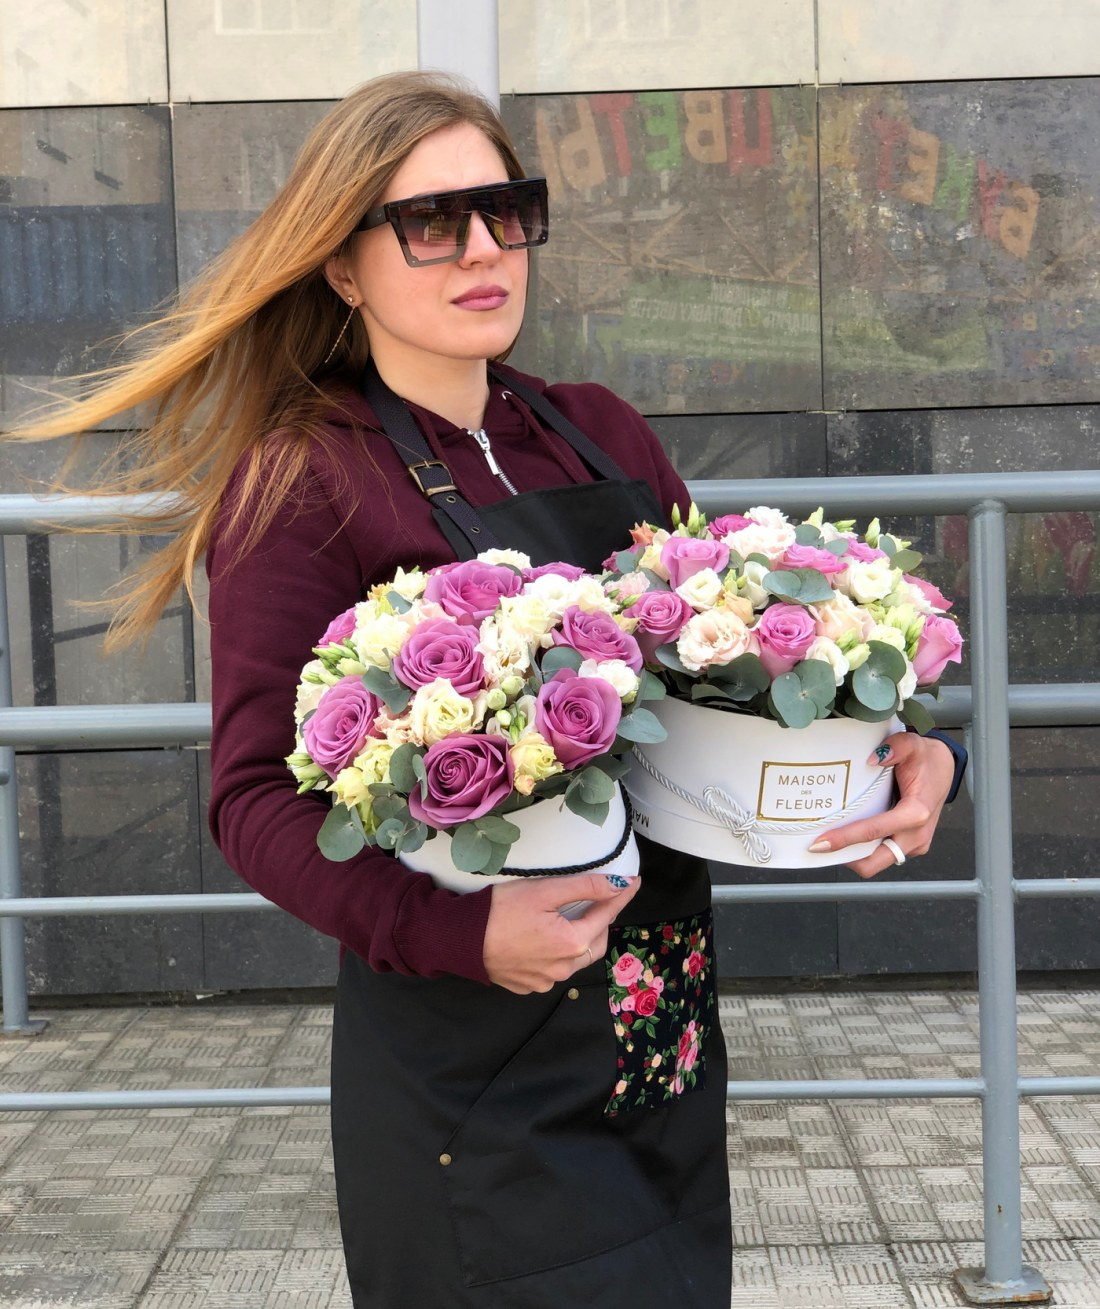 Express Delivery of flowers from the flower shop